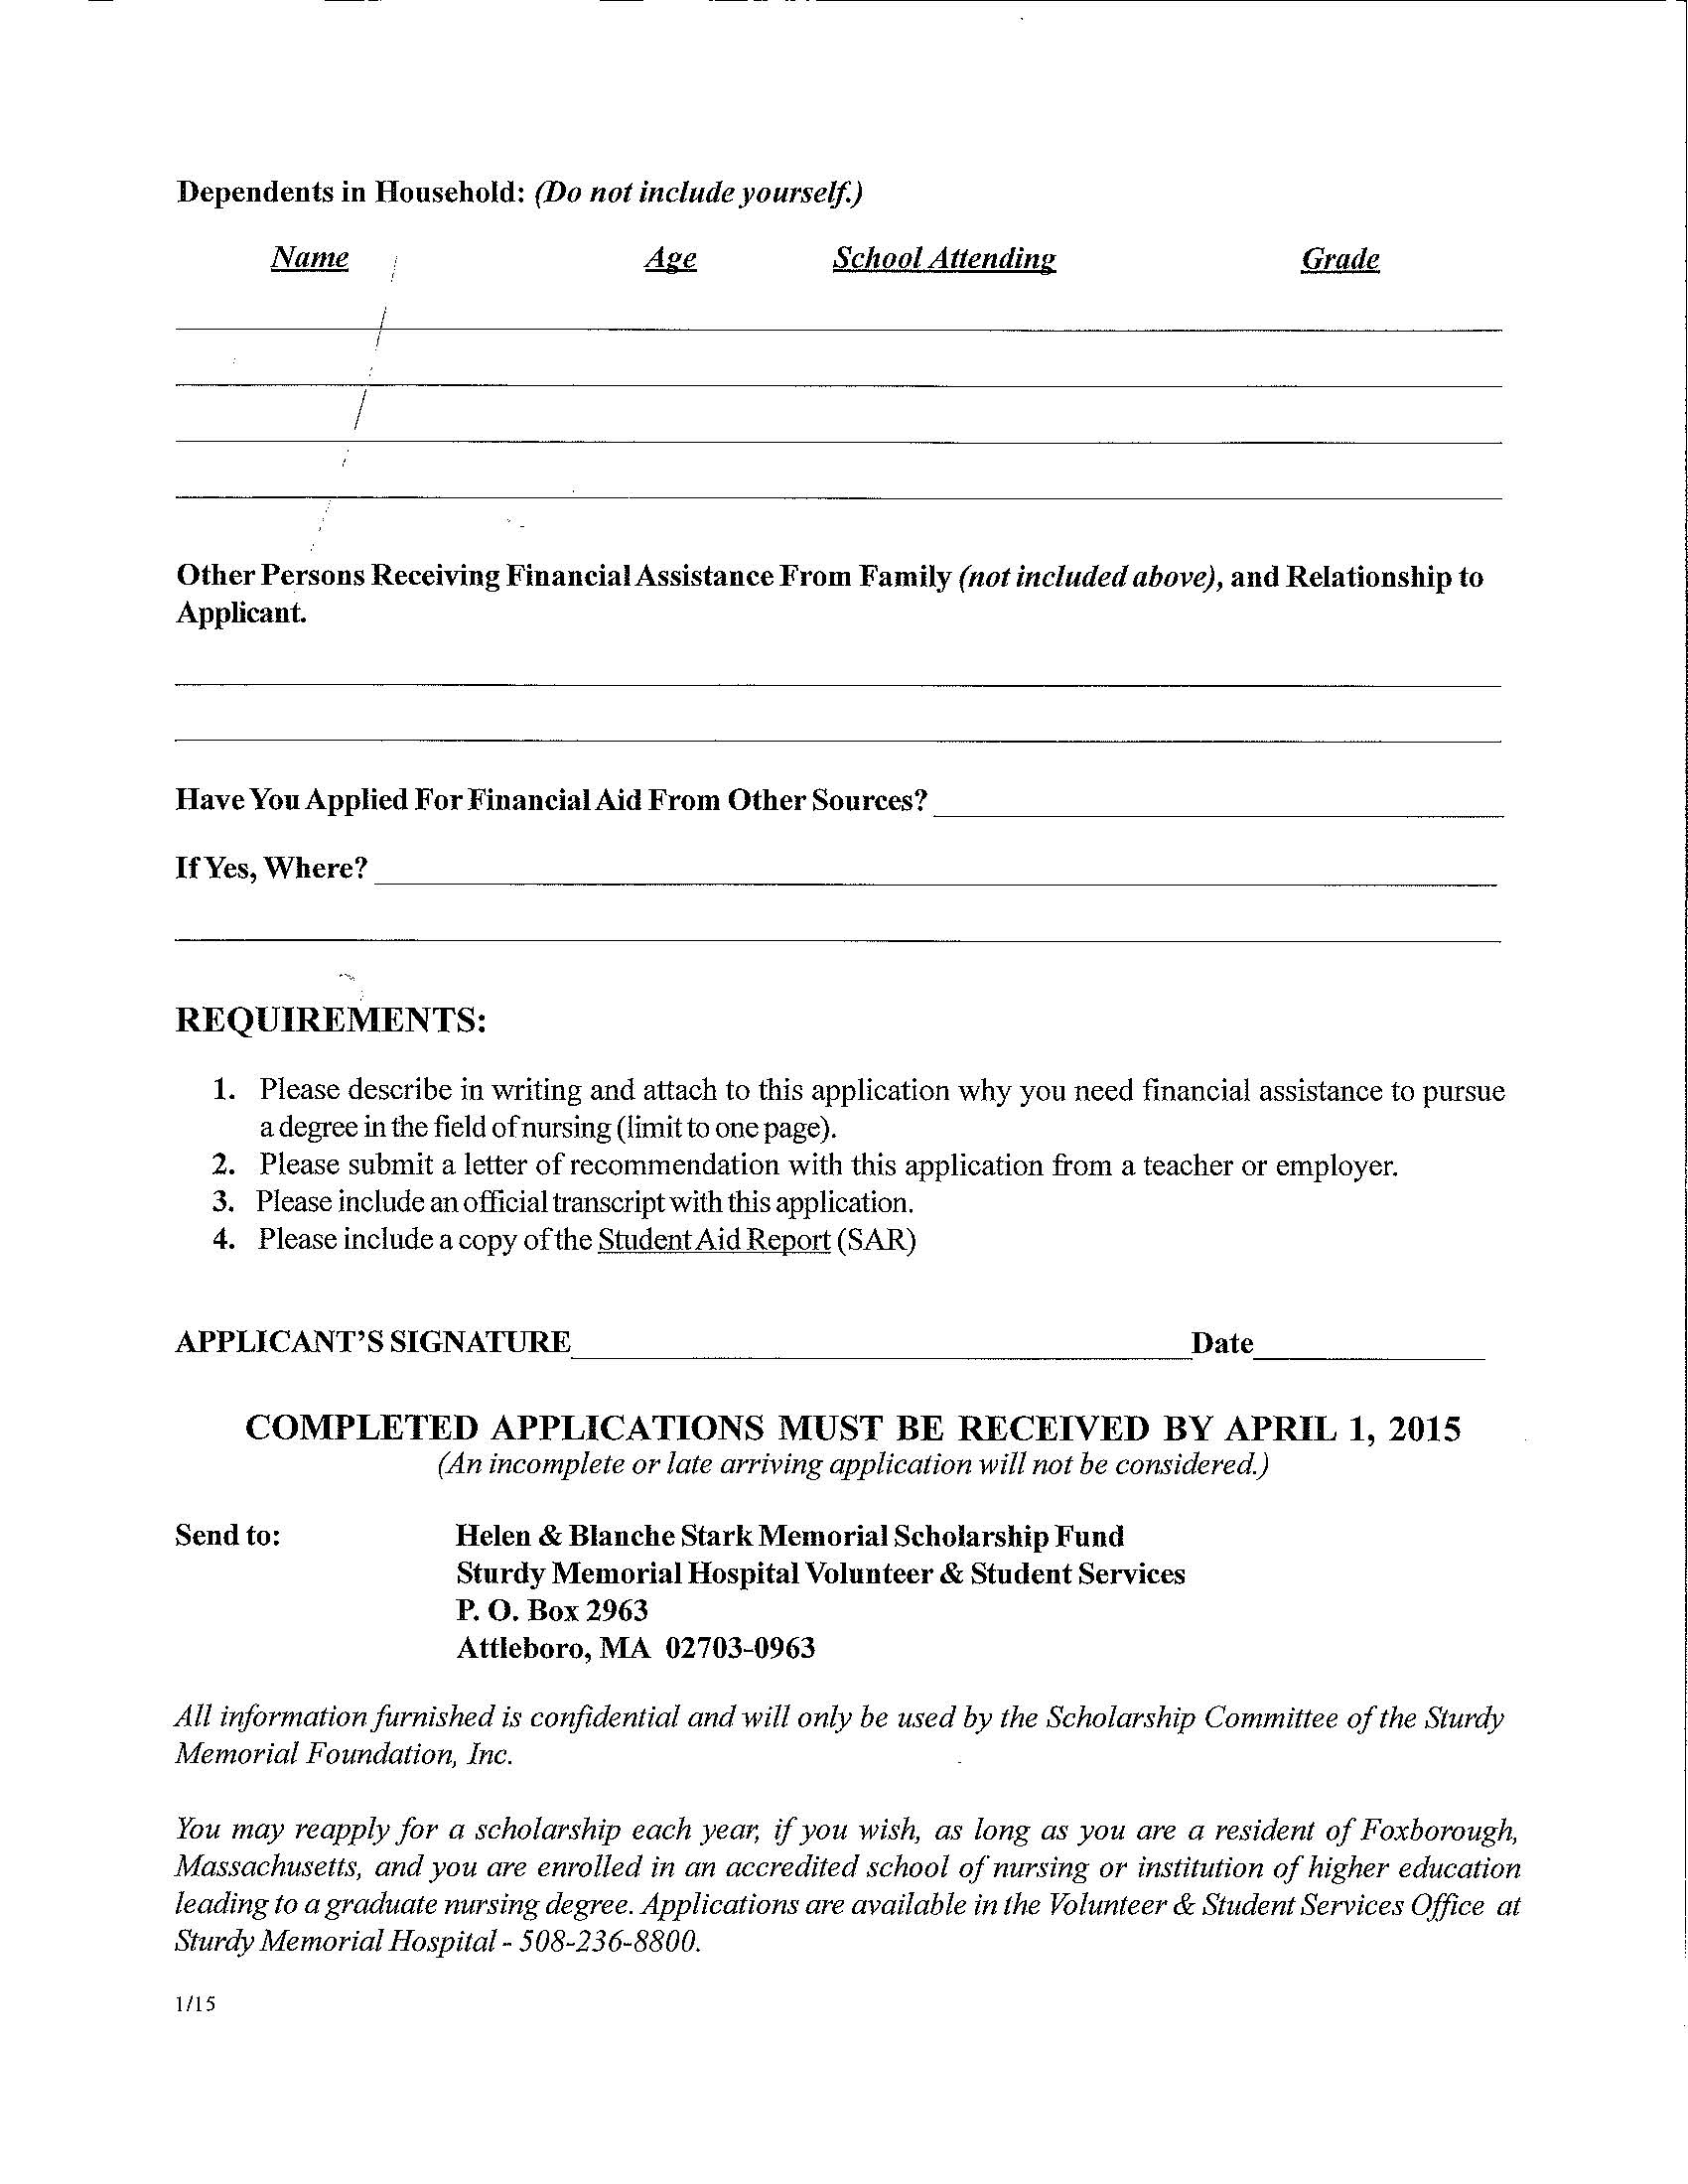 016 Essay Example Descriptive Thesis Helen Blanche Stark Memorial Scholarship Fund Application Page 2 Rare Statements Examples Full